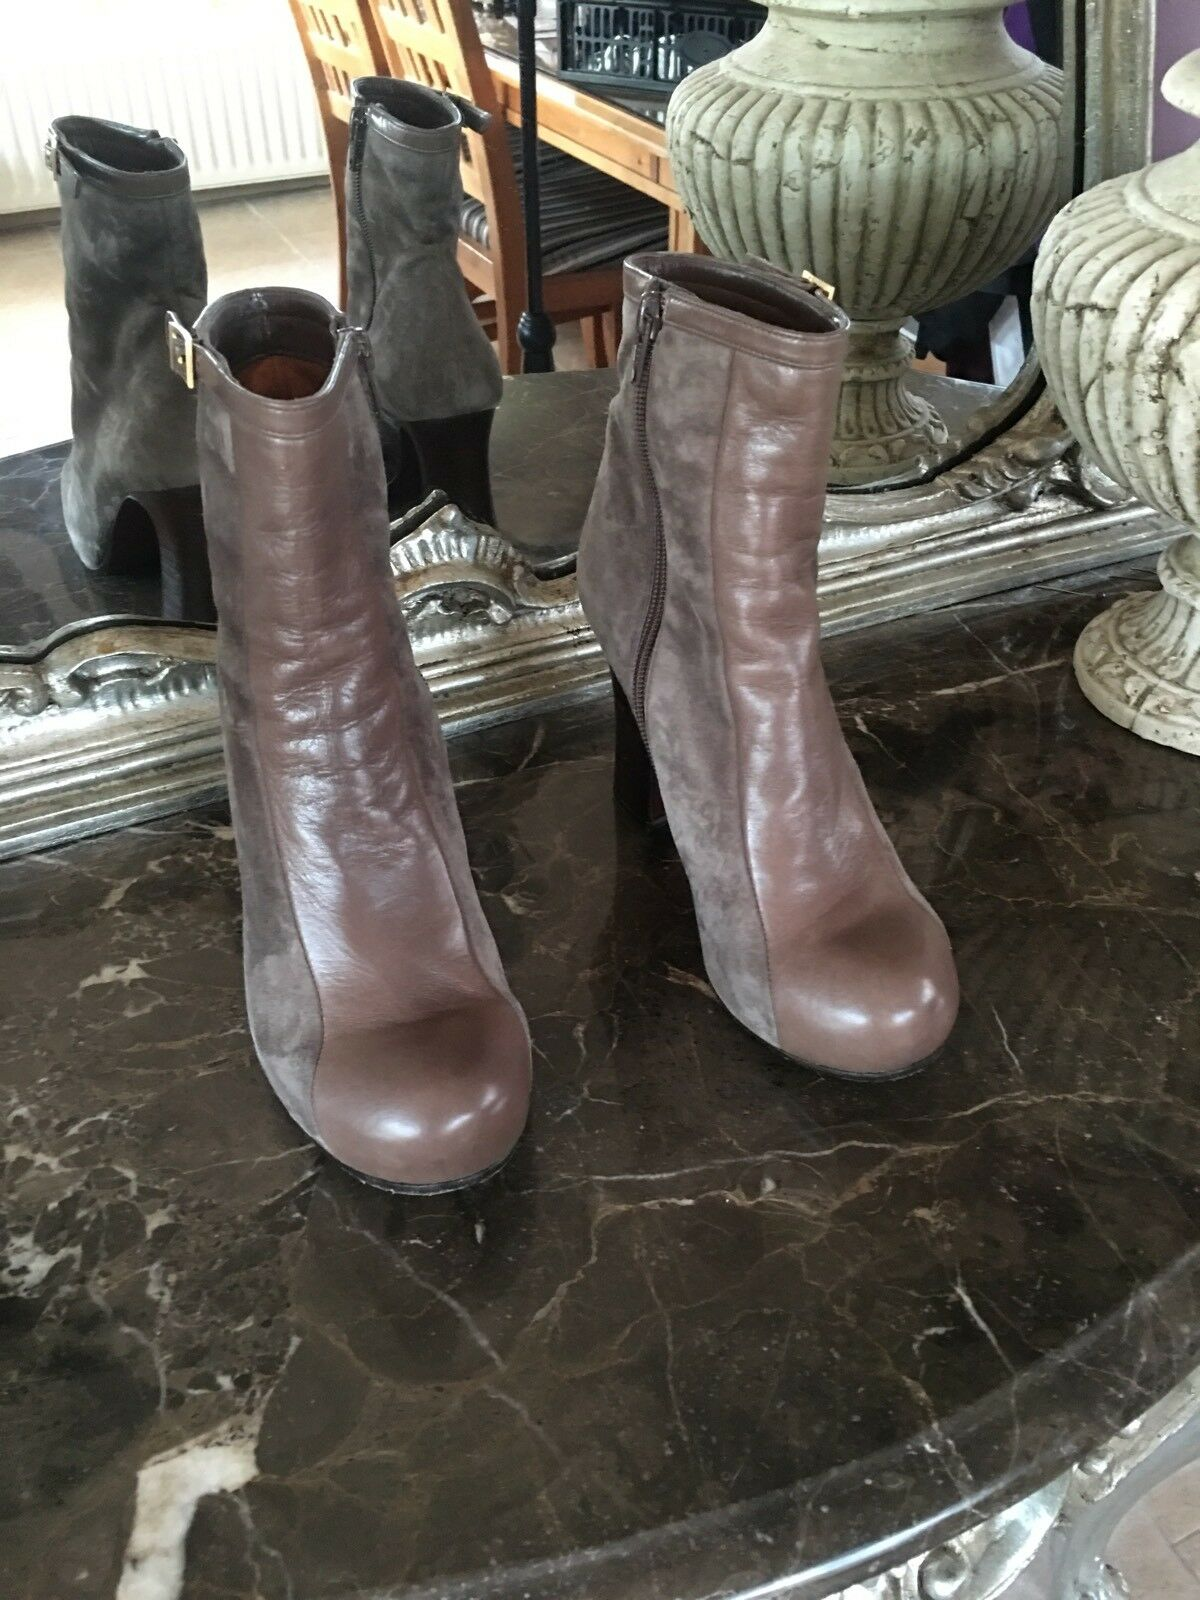 ✨Chie Worn Mihara Taupe/Stone Stiefel ✨UK 4 EU 37- Worn ✨Chie Once c478a9